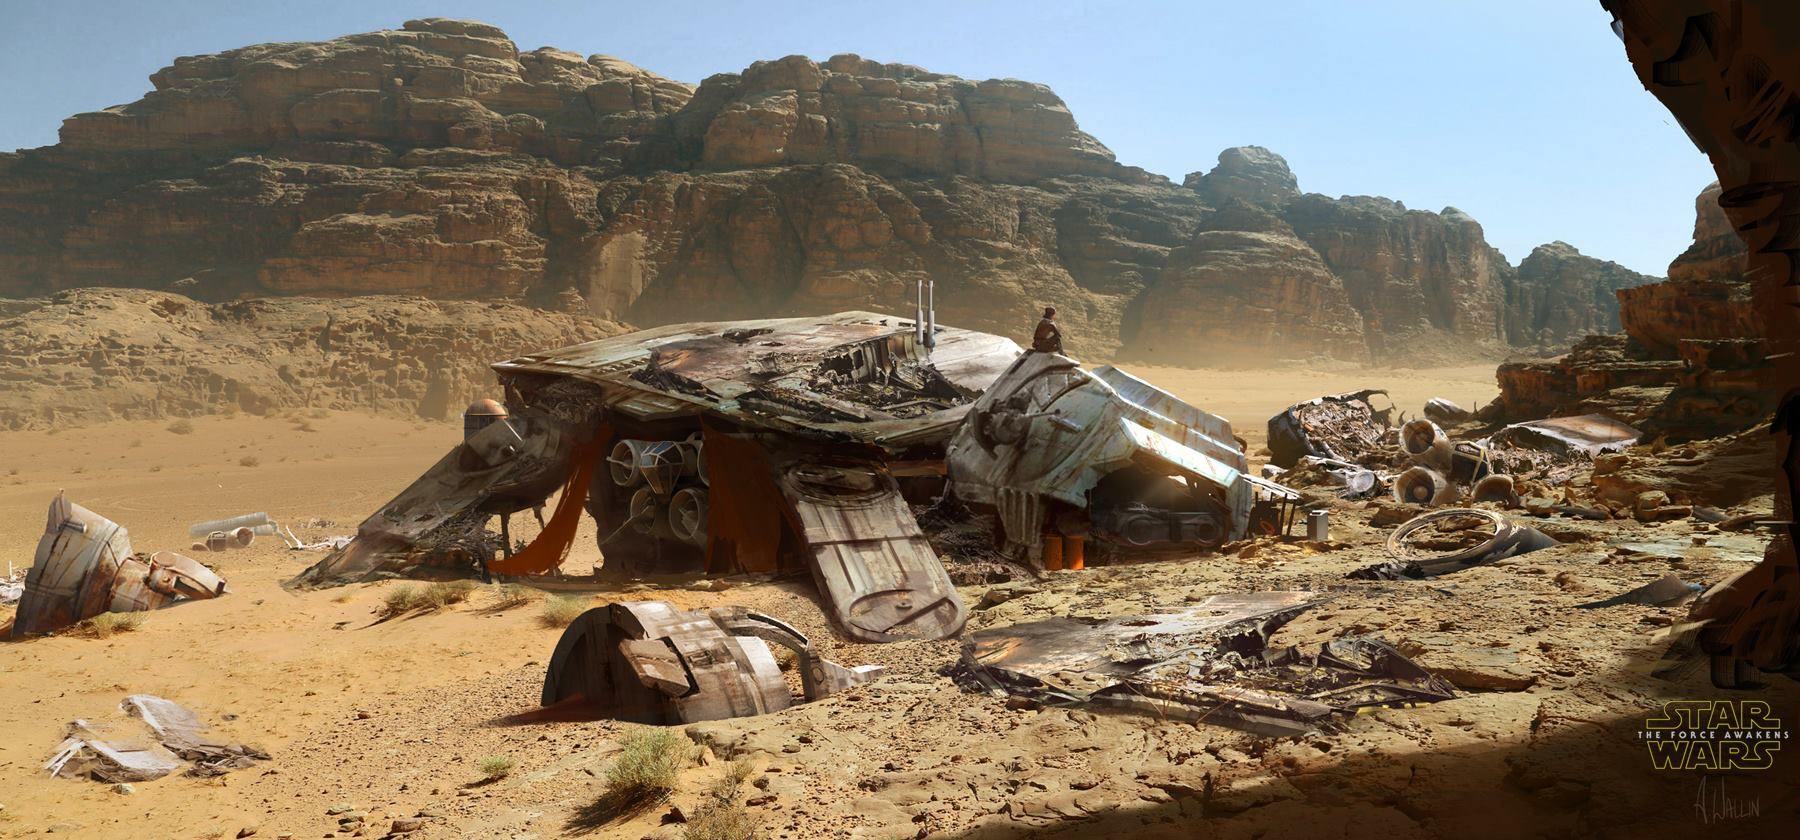 Star Wars: The Force Awakens Concept Art by Andree Wallin